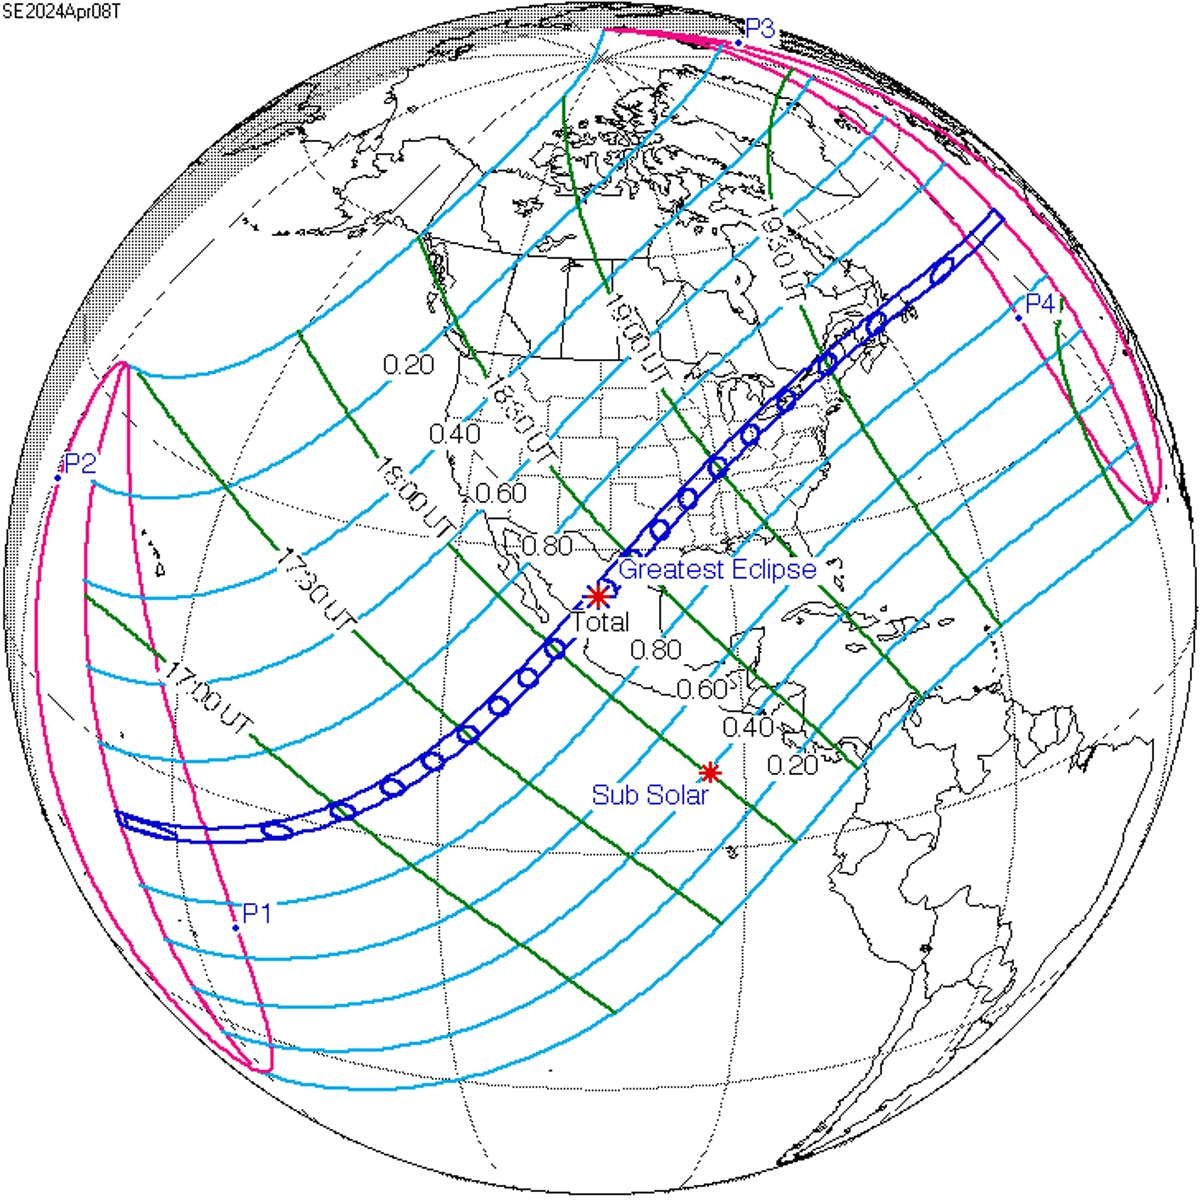 Where to See the Next U.S. Total Solar Eclipse in 2024